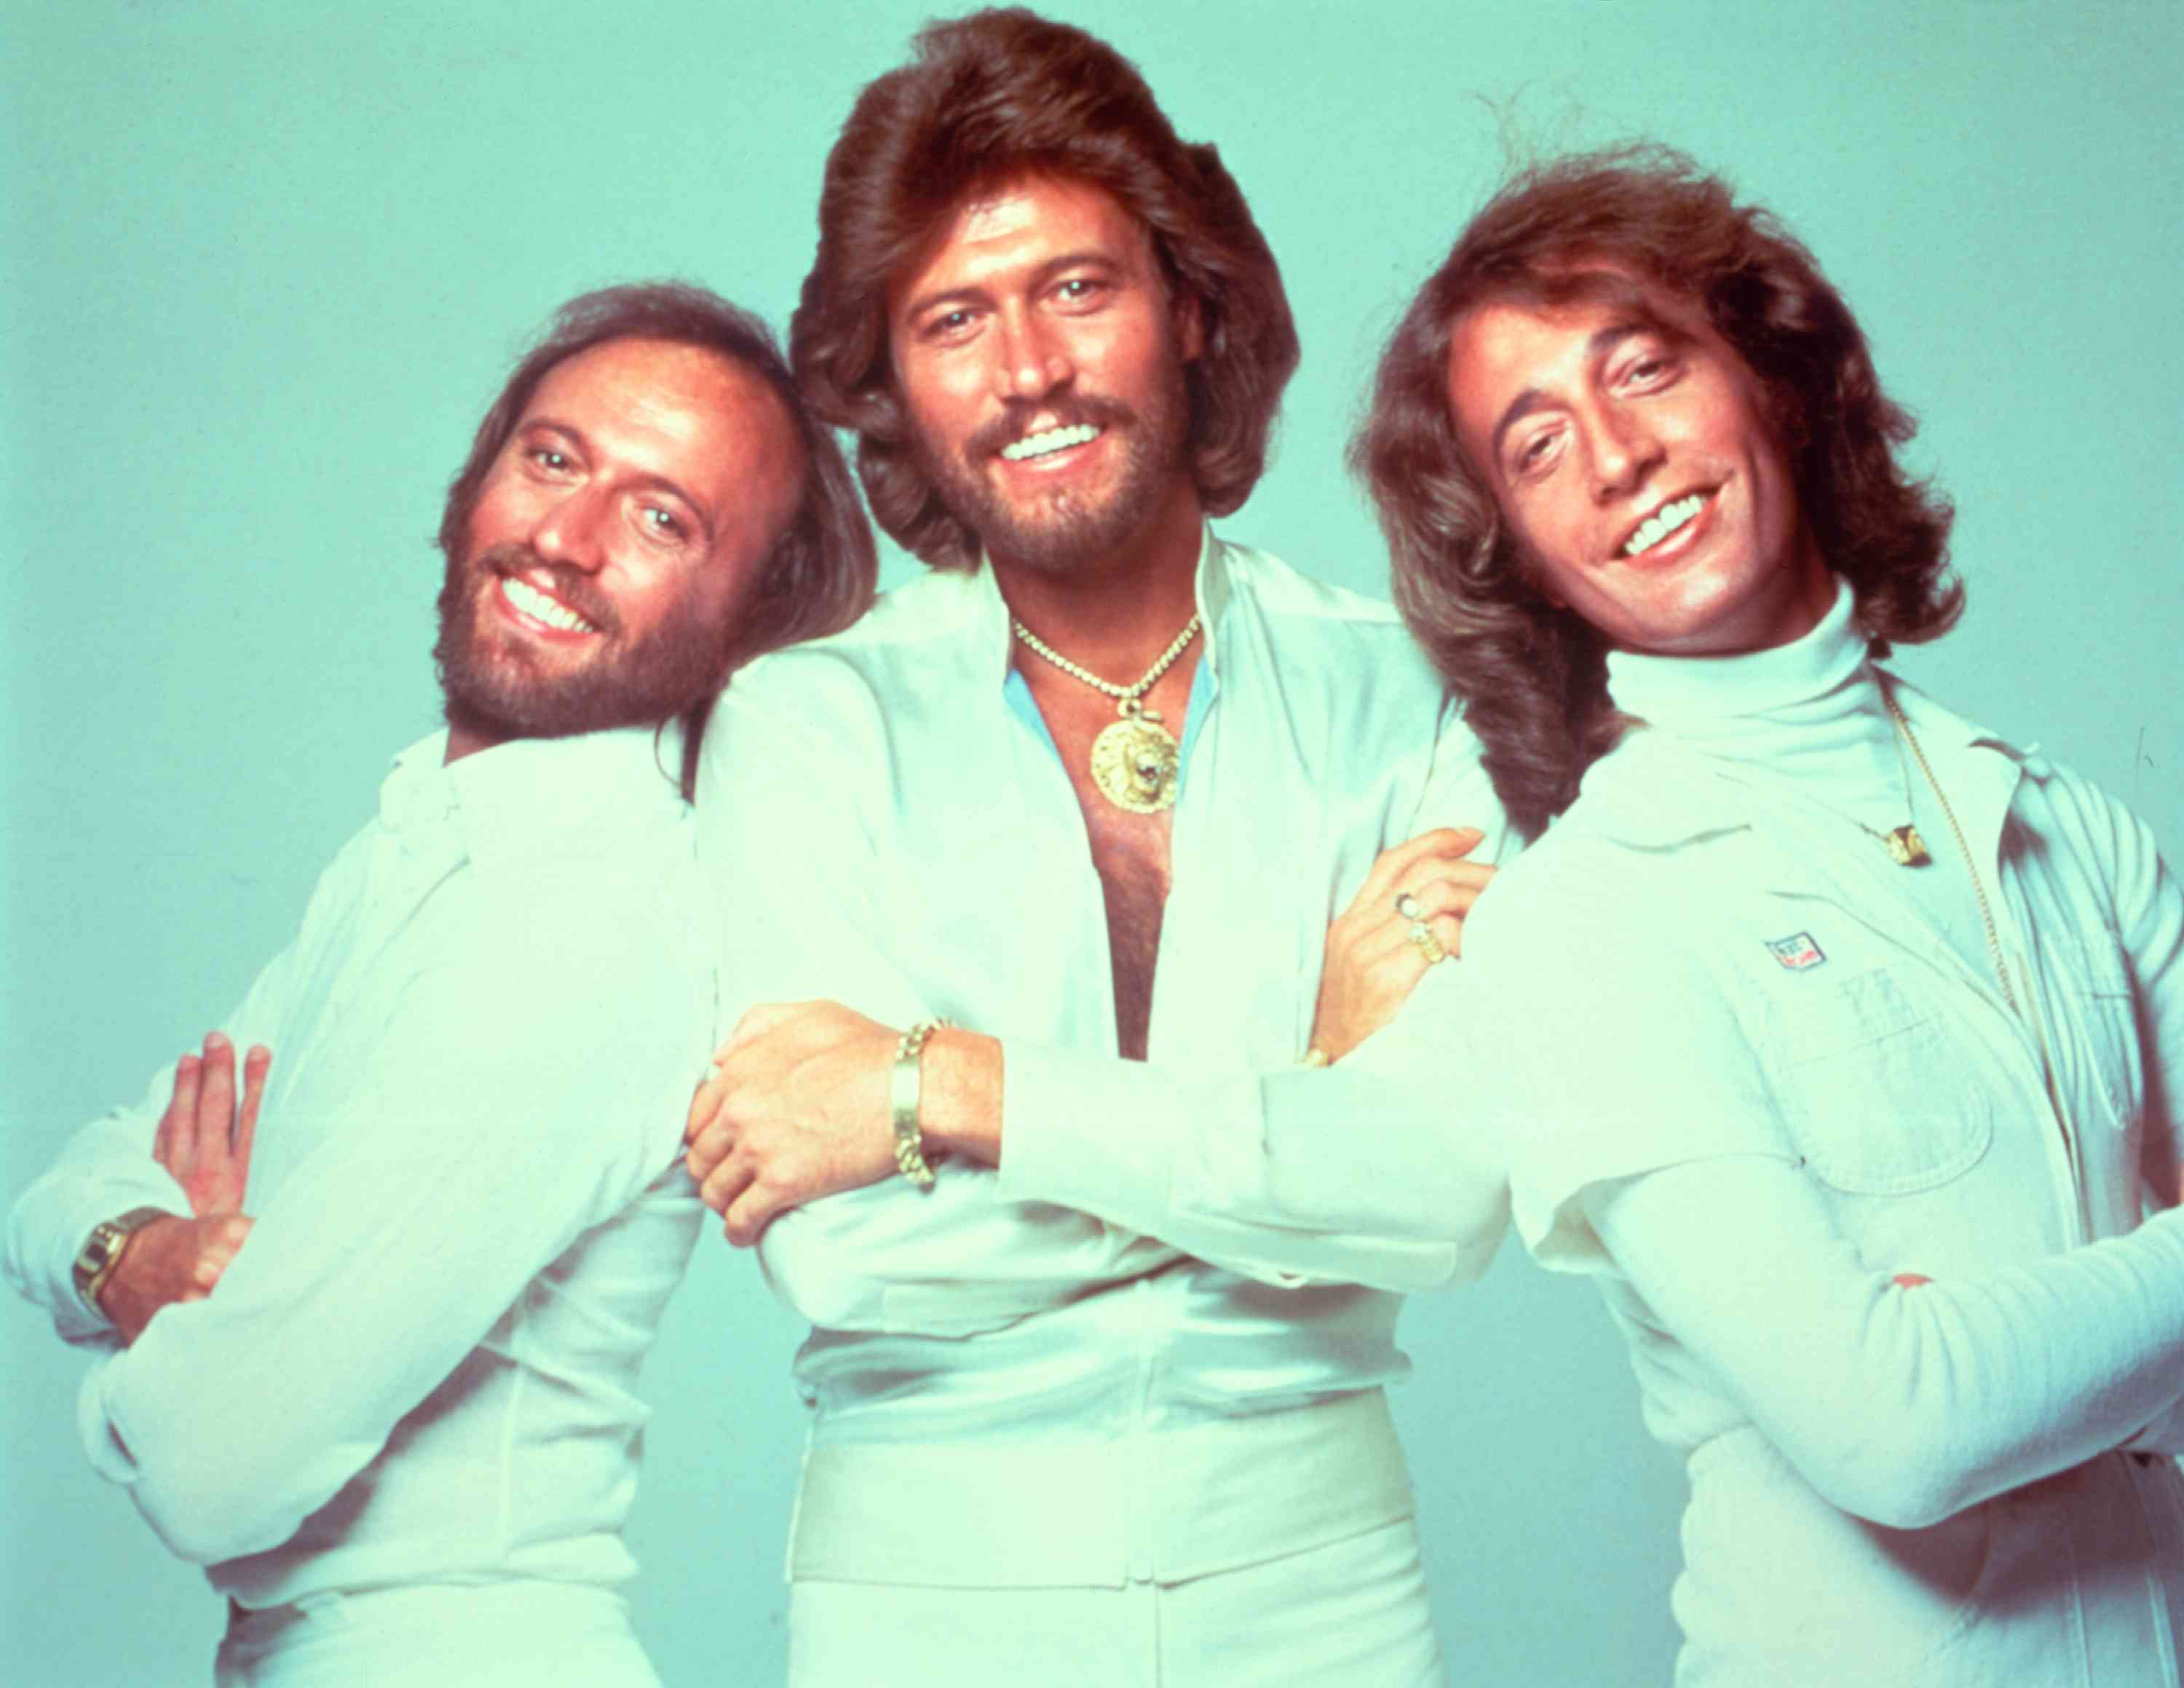 Portrait of the Bee Gees